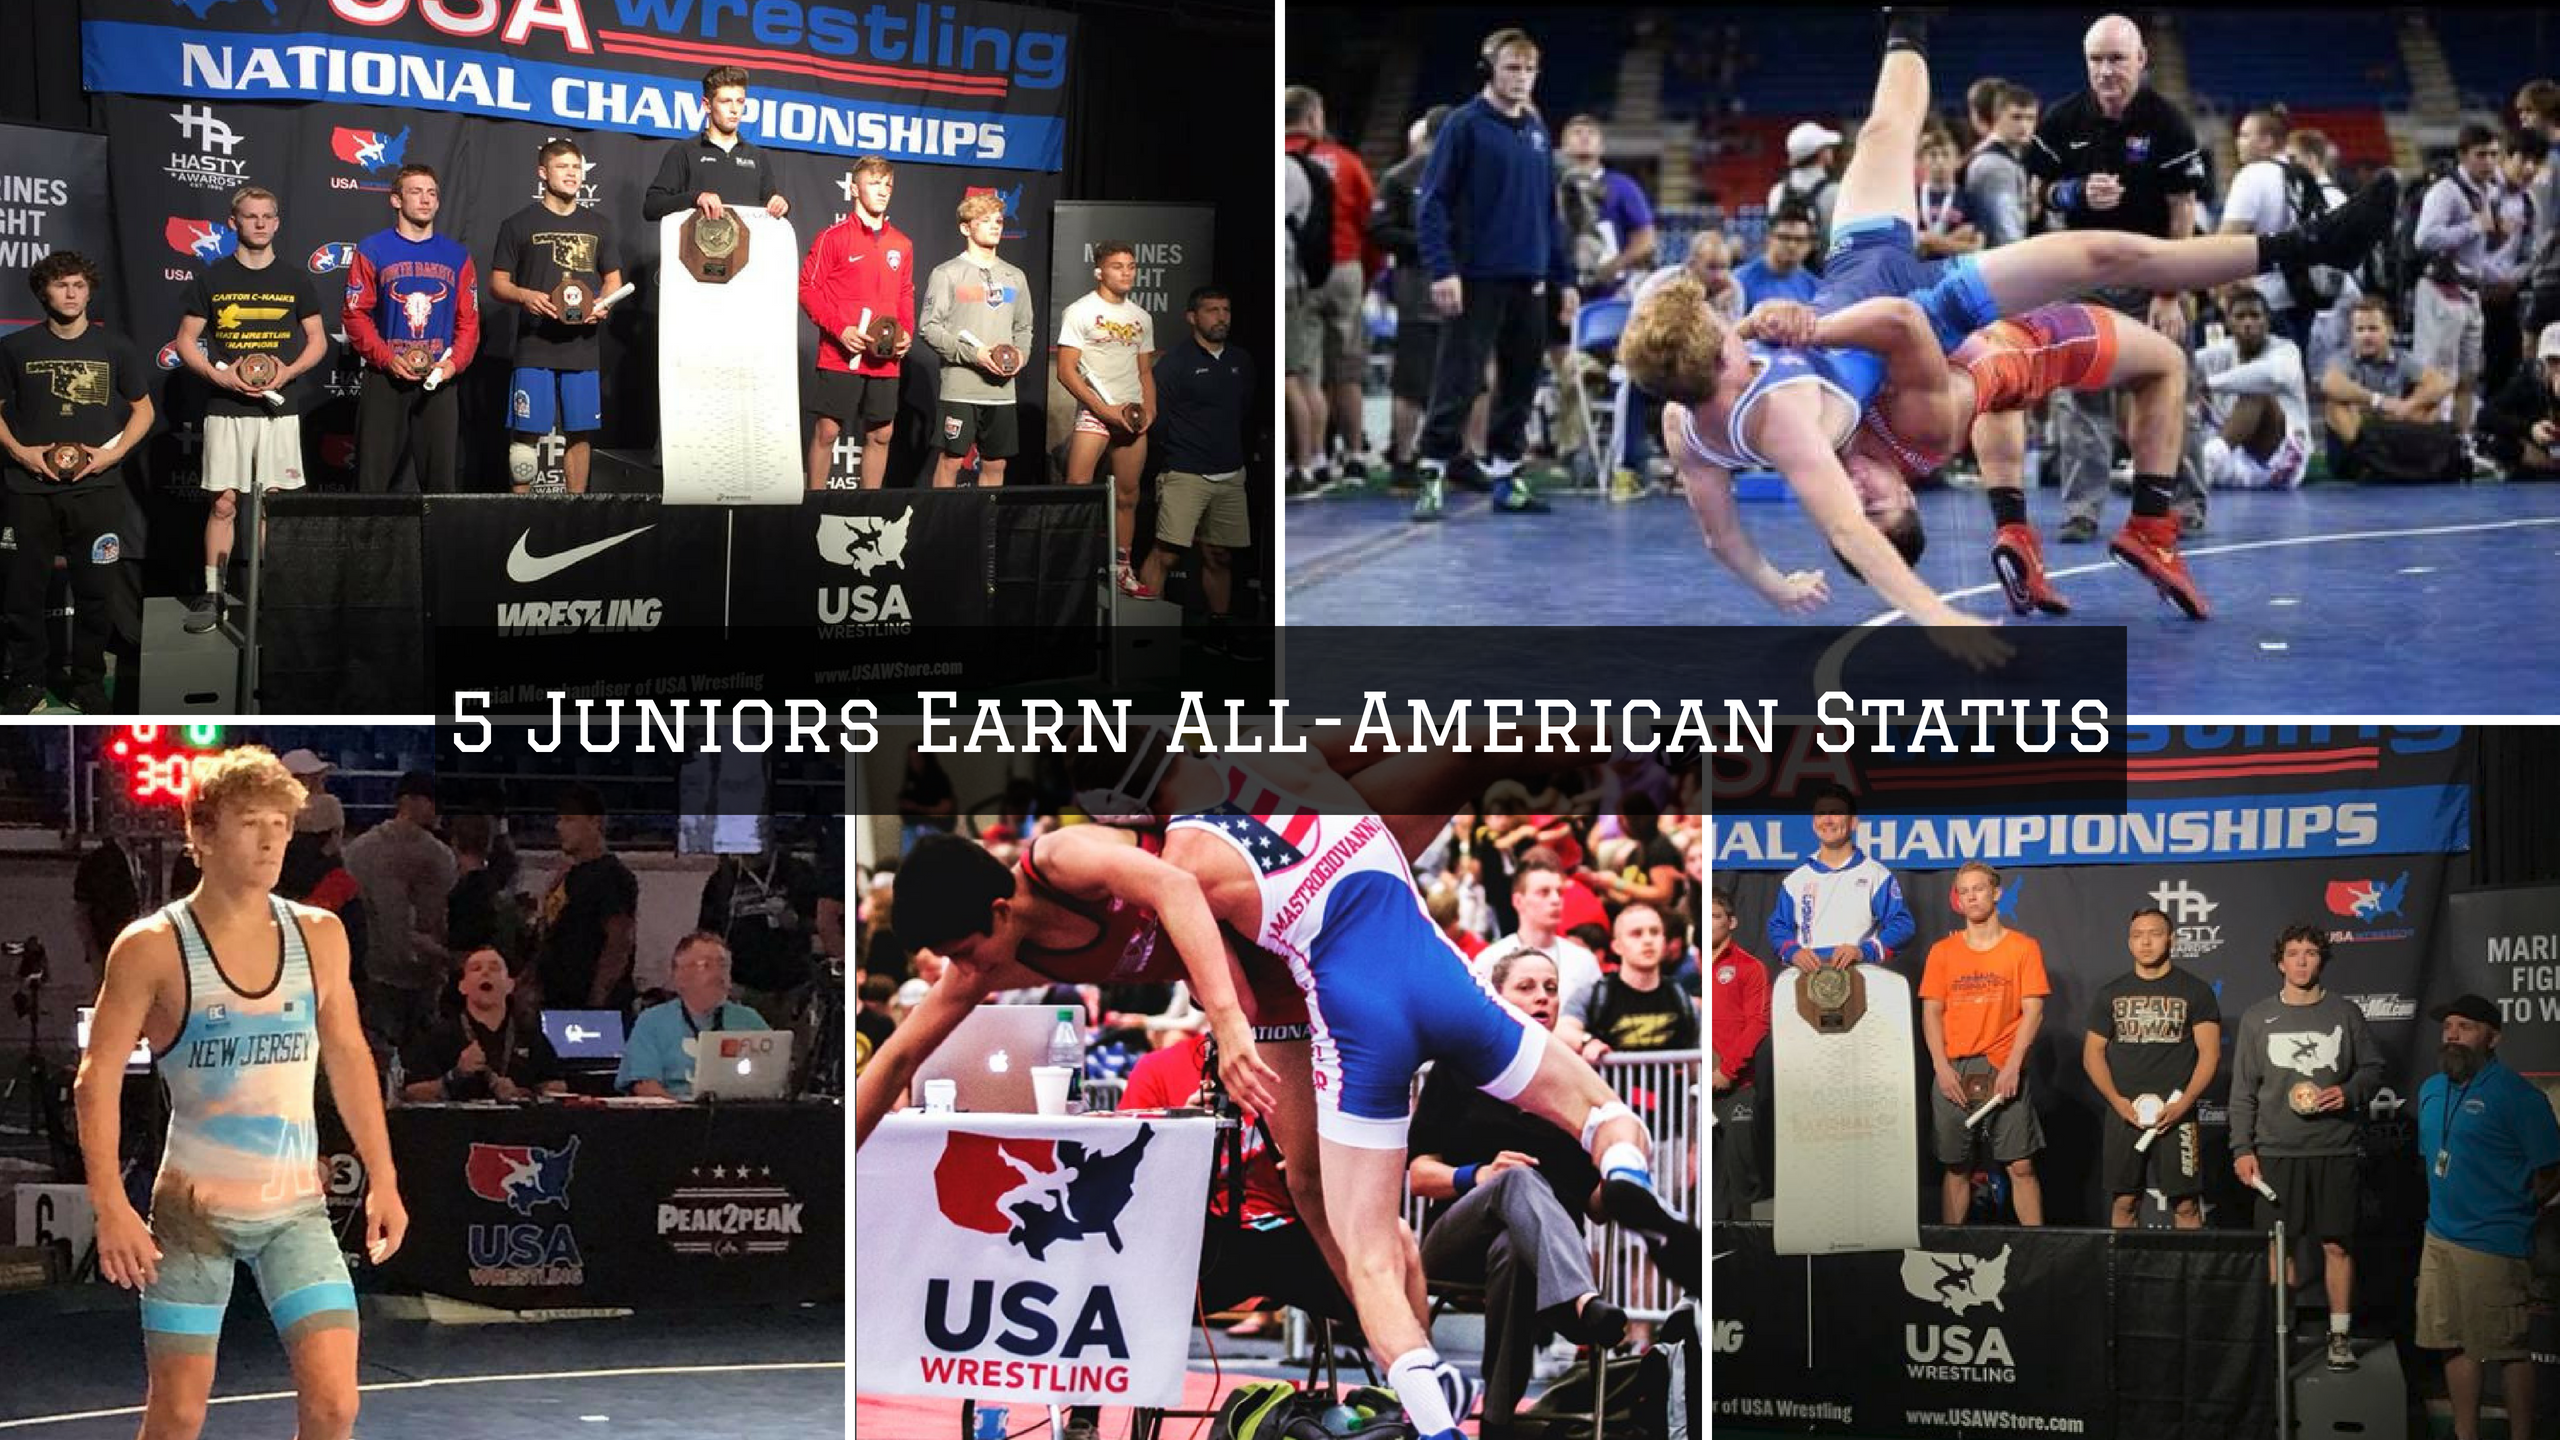 5 Juniors Earn All-American Status